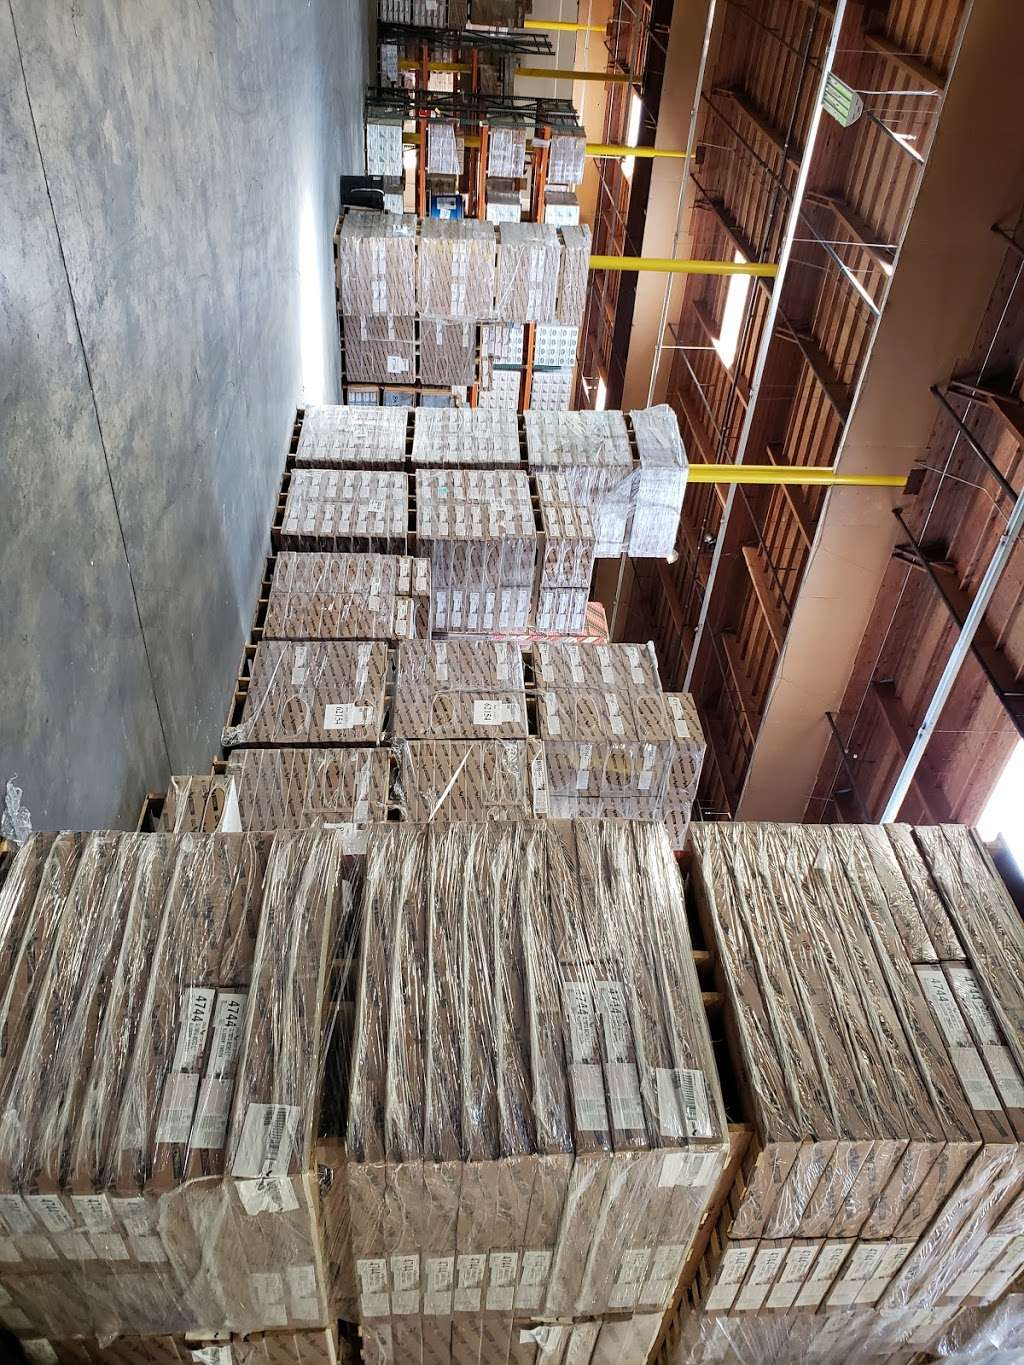 Foundation Building Materials - store  | Photo 5 of 10 | Address: A, 3343 Arden Rd, Hayward, CA 94545, USA | Phone: (510) 259-9404